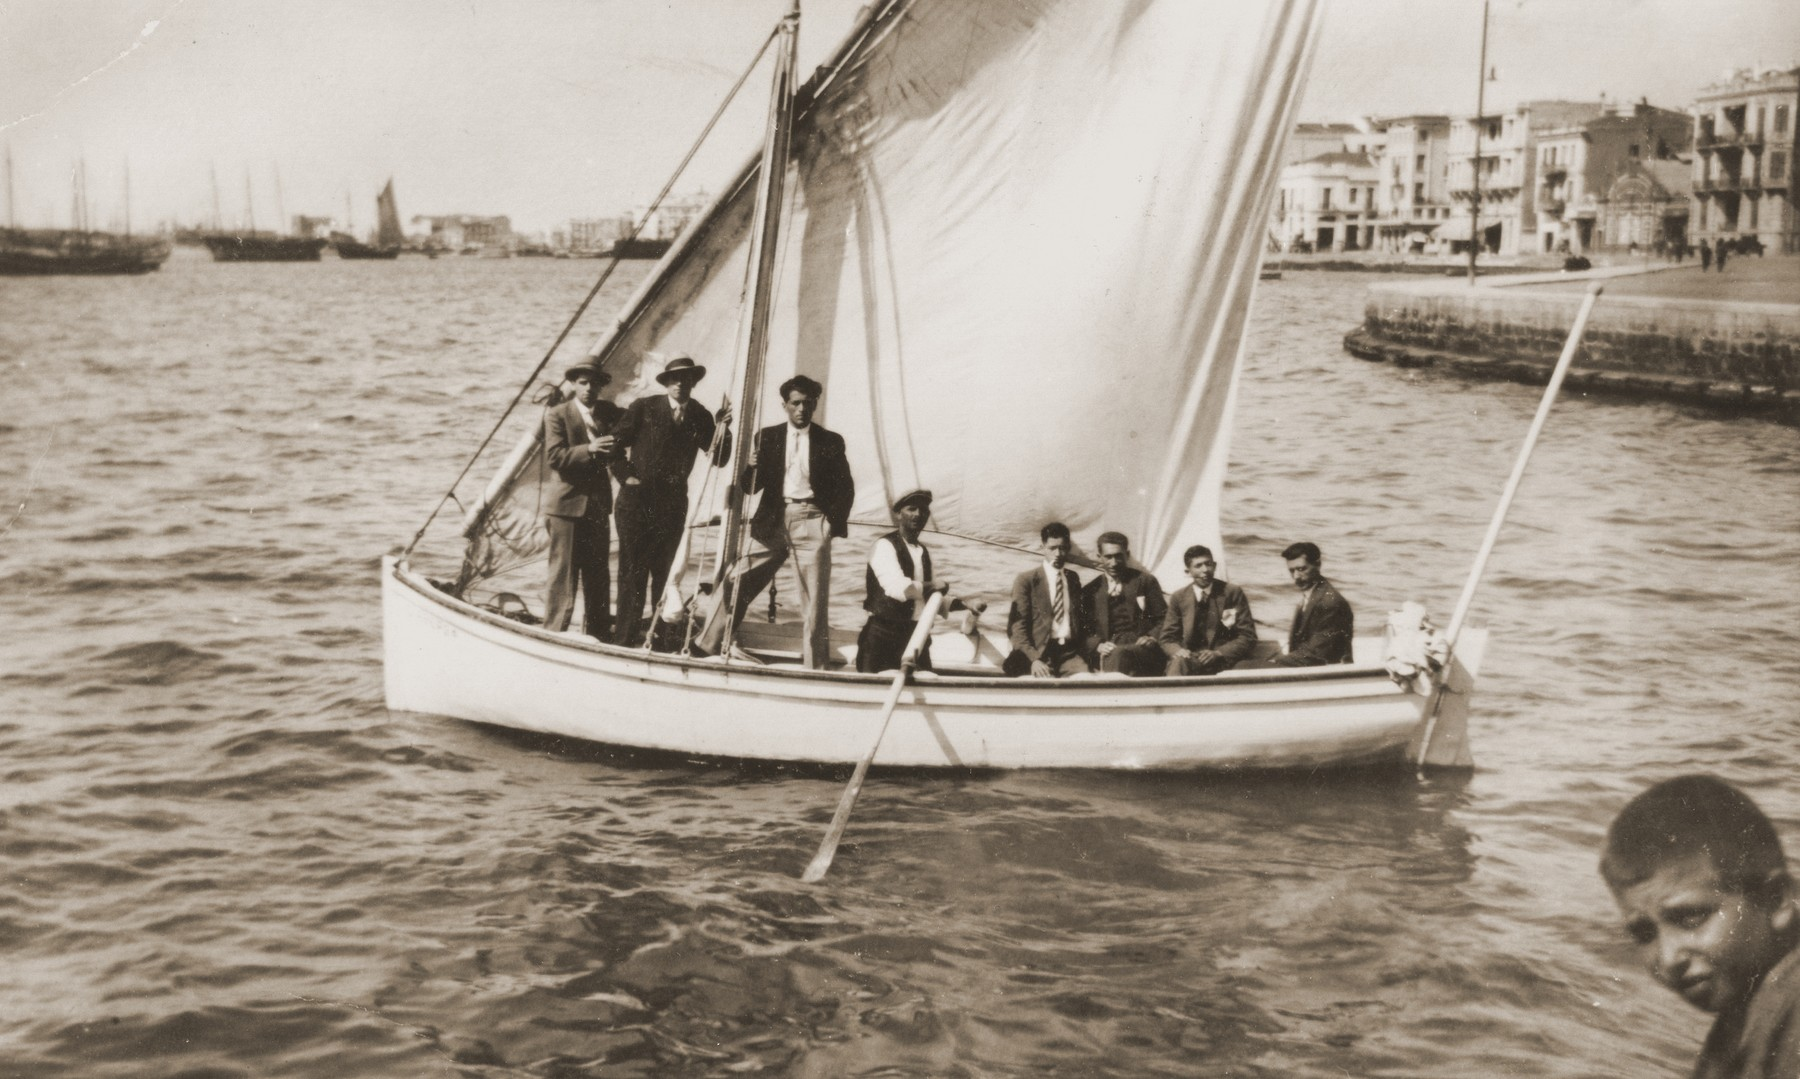 Jewish youth on a sailboat in Salonika harbor.